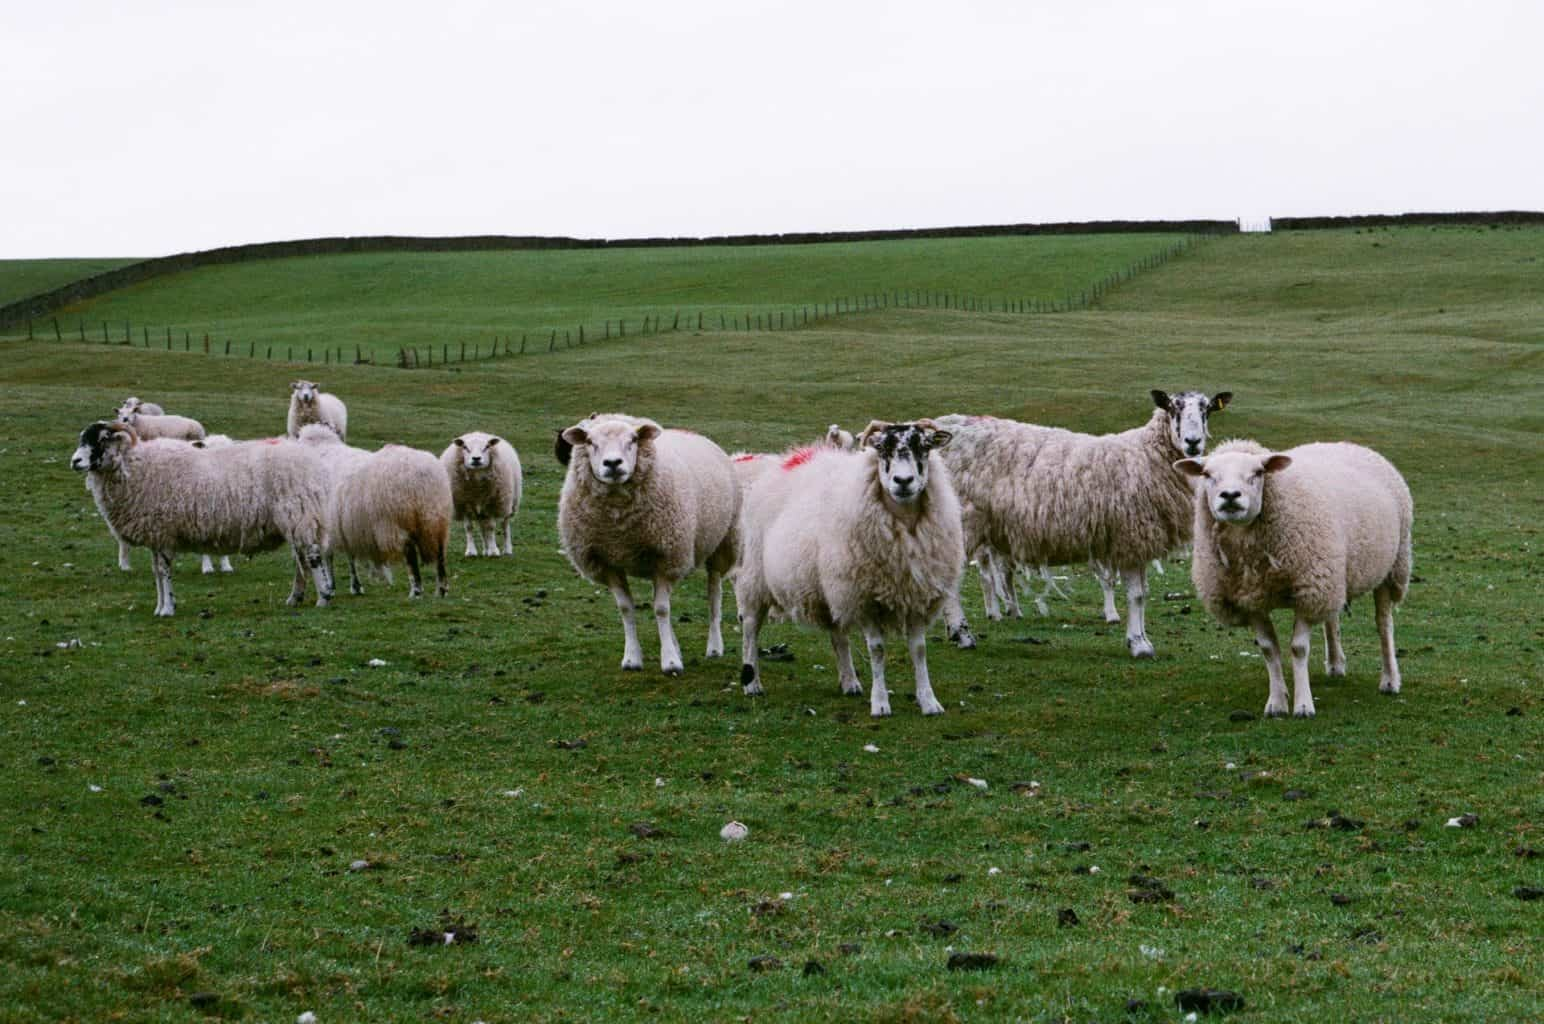 A herd of sheep standing in a field in the Yorkshire Dales on a rainy day.